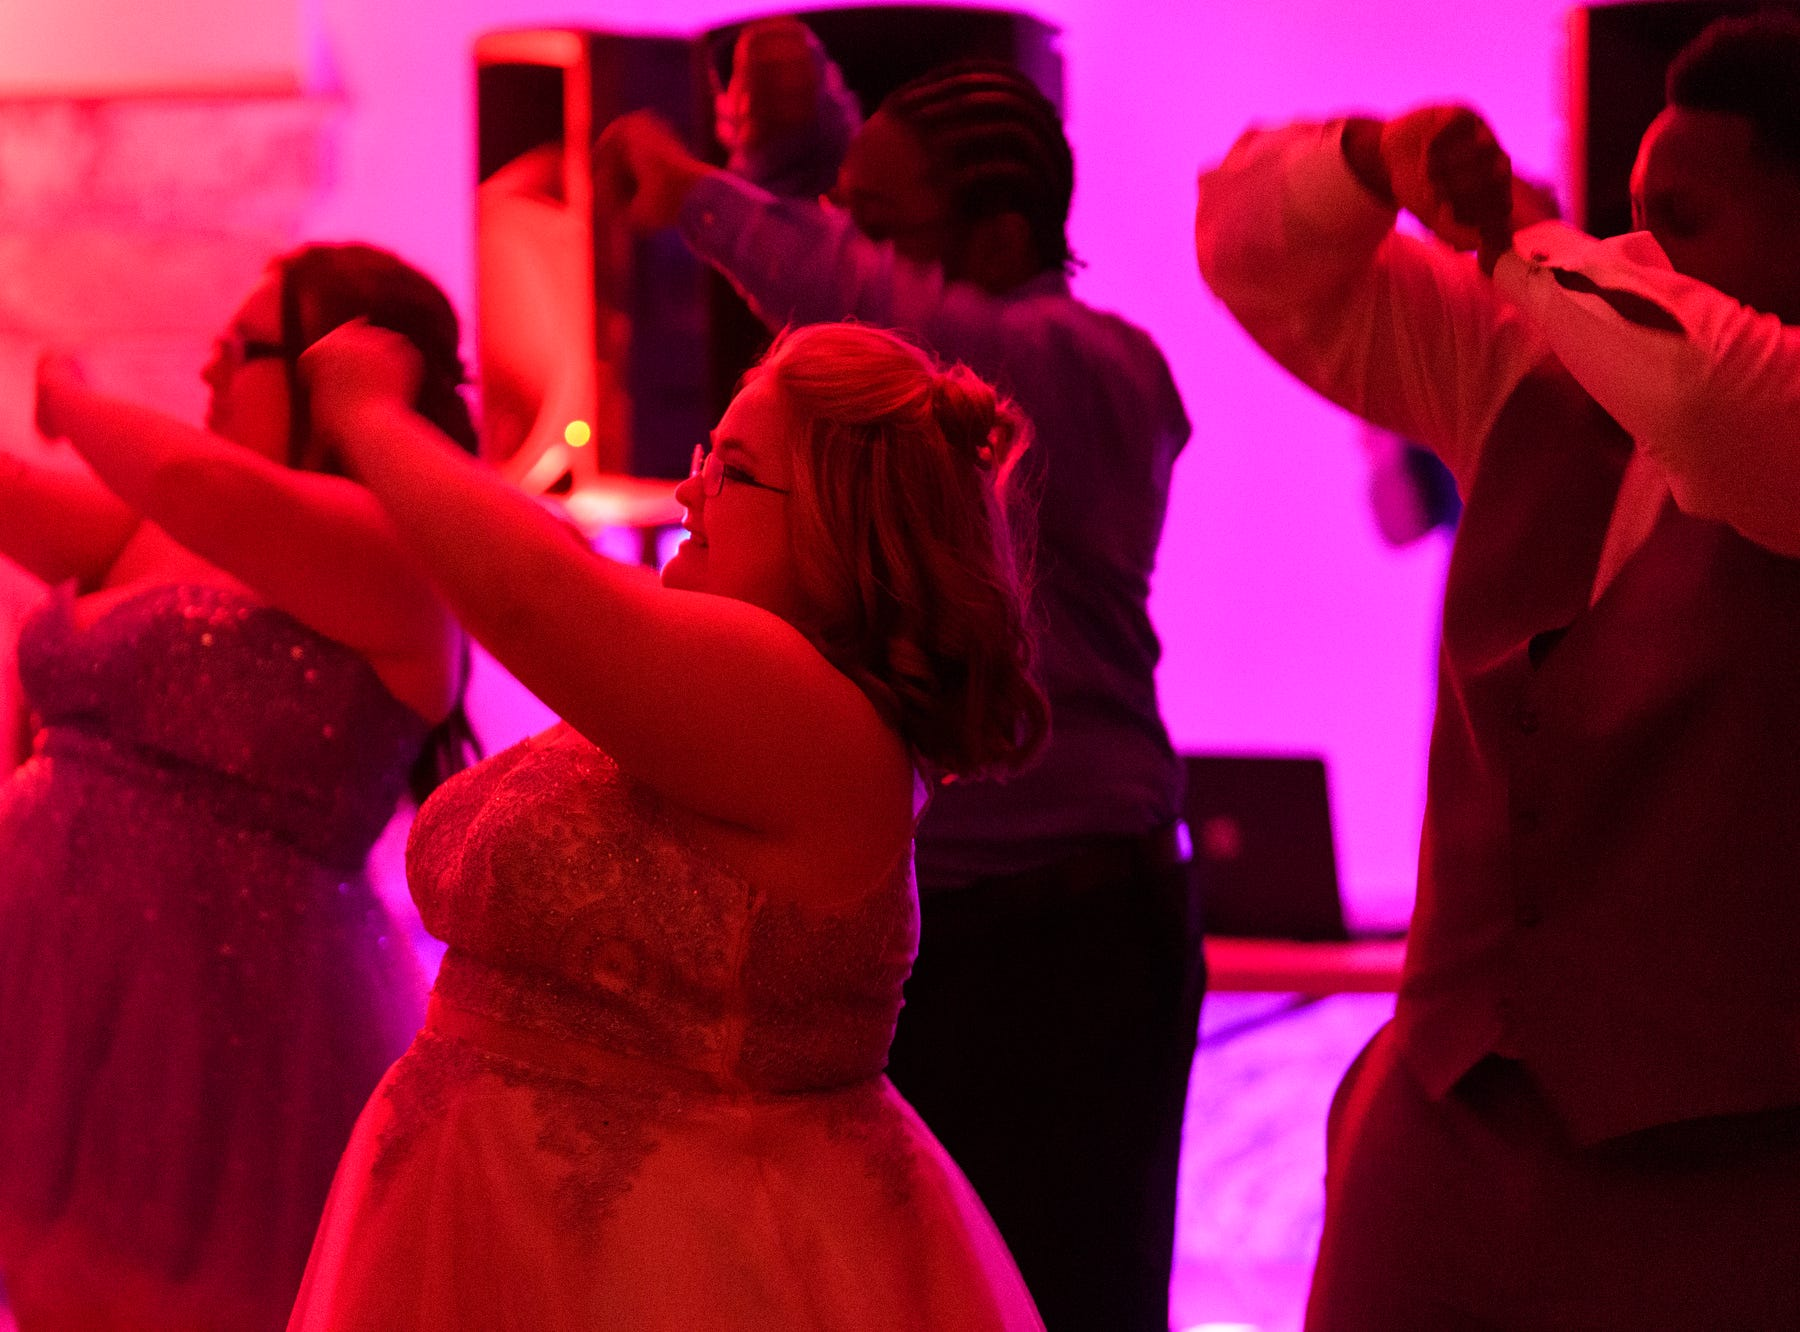 Cassidy Houston, center, dances the night away with friends during Bosse High School's prom at the Old Vanderburgh County Courthouse in downtown Evansville, Ind., Saturday, April 6, 2019.